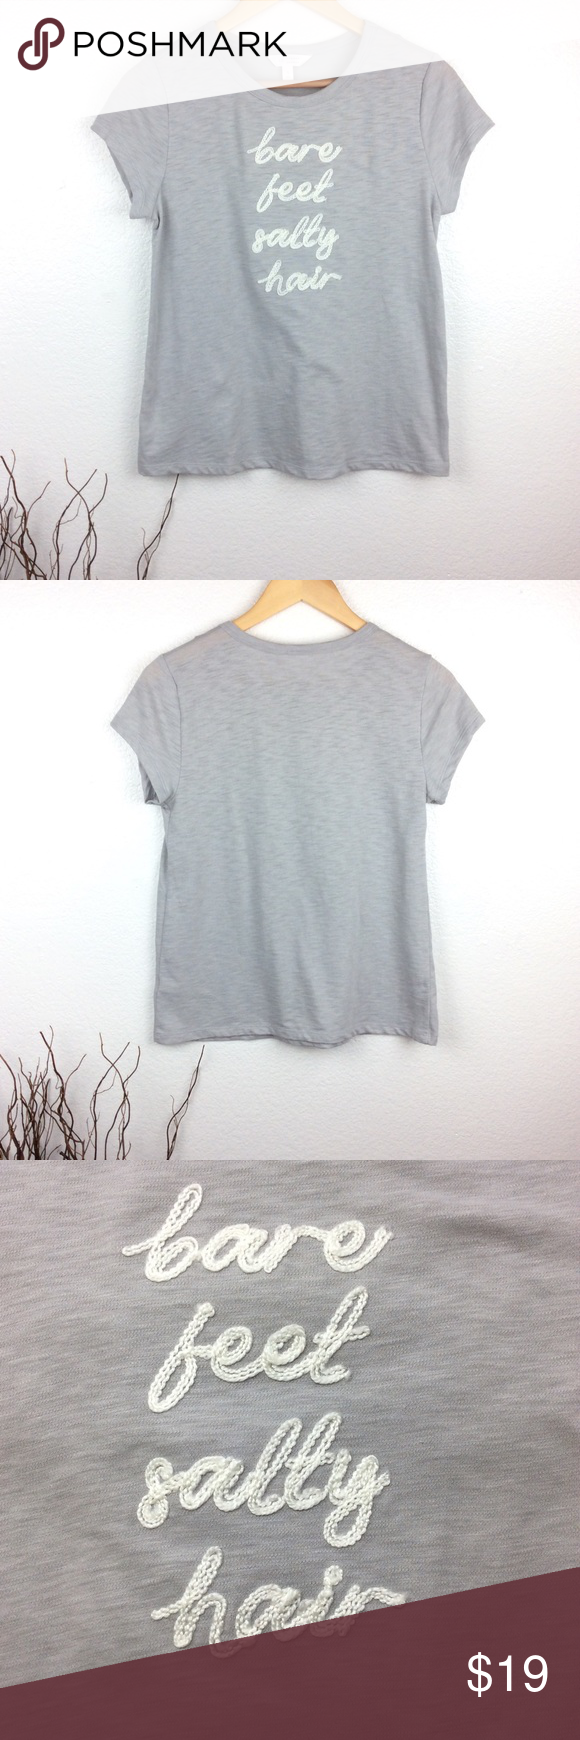 """* Lauren Conrad - Bare Feet Salty Hair - Tee * Lauren Conrad - Bare Feet Salty Hair - Tee. Gray with ivory embroidered lettering. 60% Cotton 40% Polyester. In excellent condition. Size S Approximate measurements from flat: Bust: 17"""" Hip: 19 1/2"""" Length: 23 1/2"""" Sleeve length: 4 3/4"""" **offers always considered** *no trades* LC Lauren Conrad Tops Tees - Short Sleeve #laurenconradhair * Lauren Conrad - Bare Feet Salty Hair - Tee * Lauren Conrad - Bare Feet Salty Hair - Tee. Gray with ivory #laurenconradhair"""